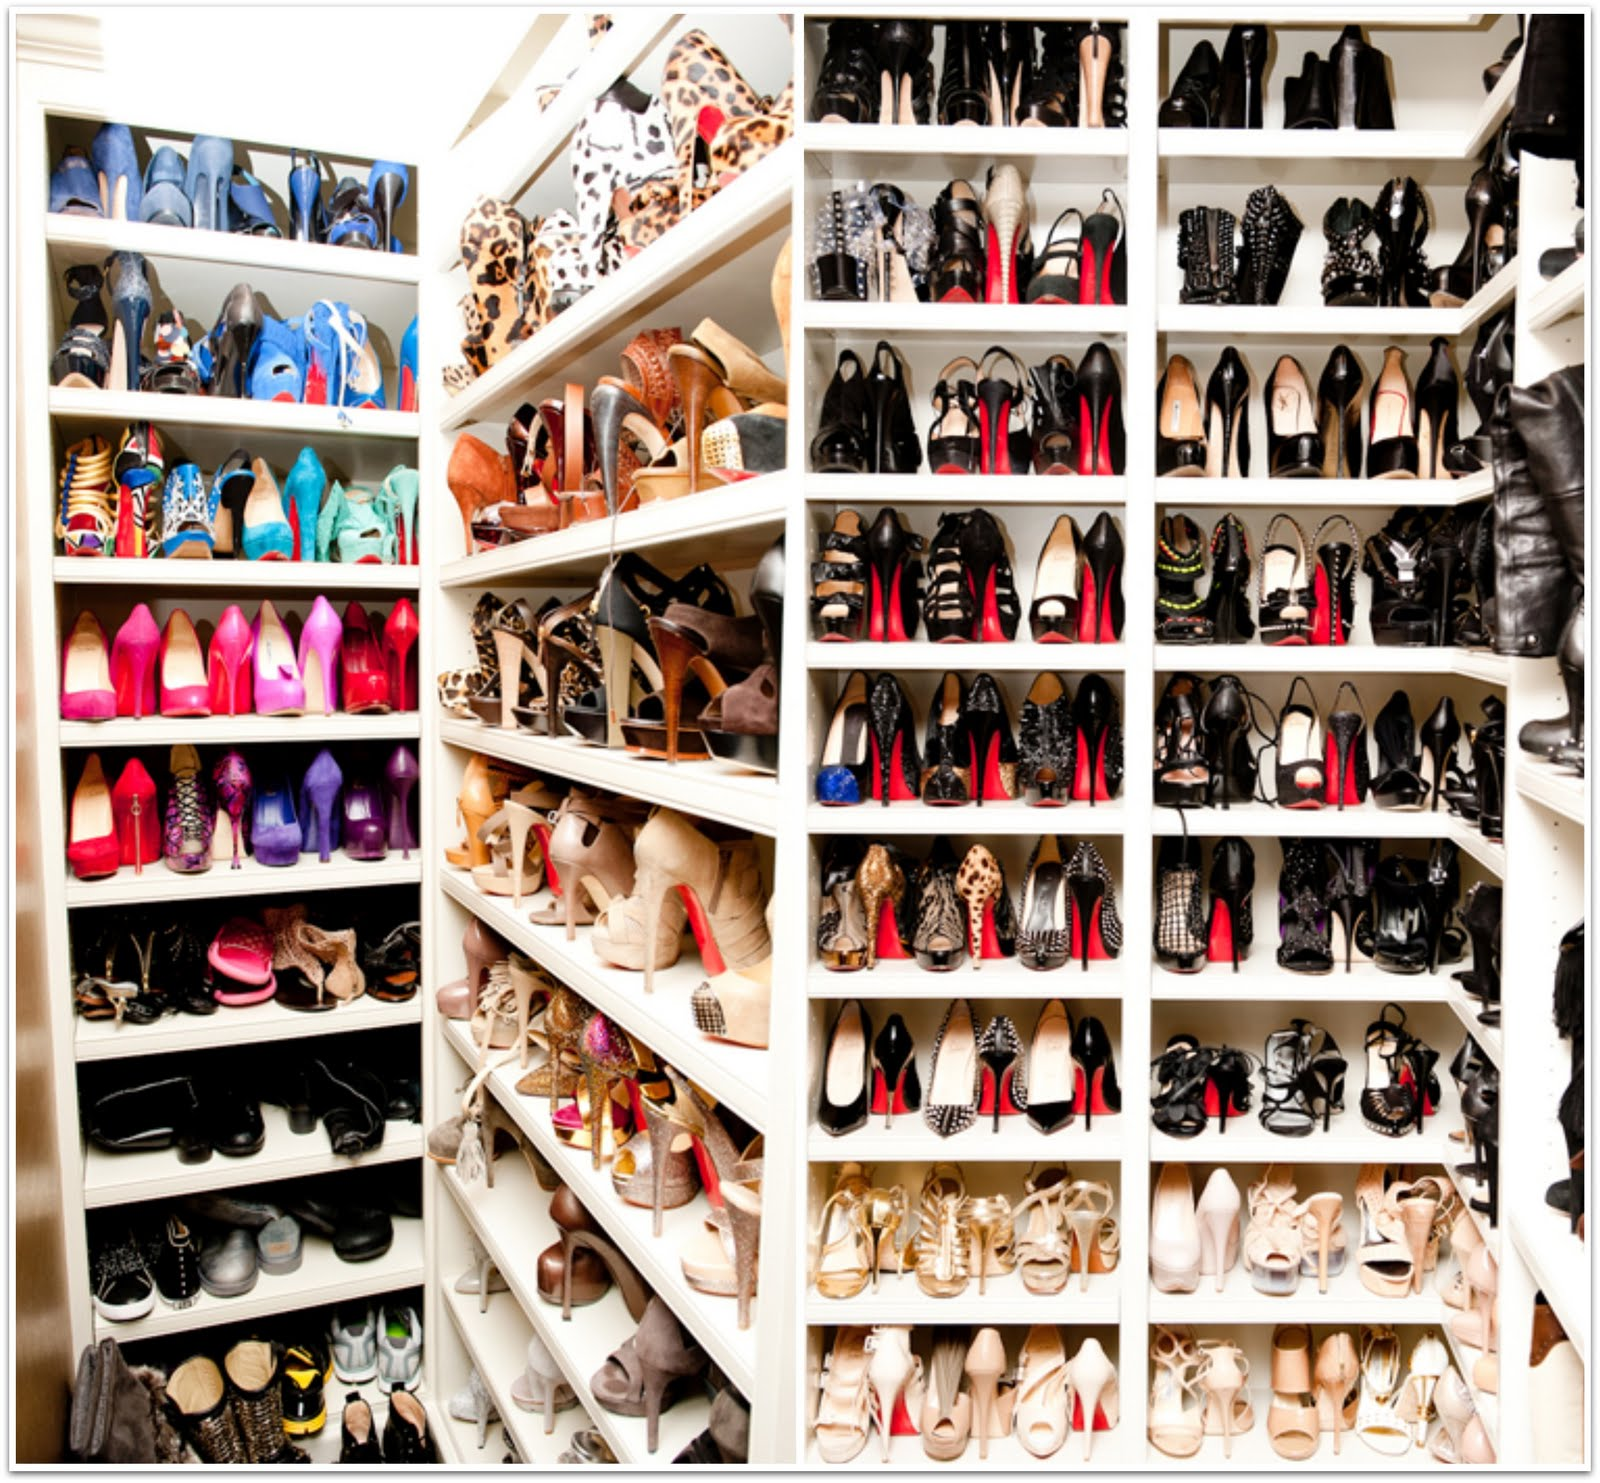 Her MASSIVE Shoe Closet!! And Judging From The Huge Amount Of Those Red  Soles   An Outright Loub Fan.